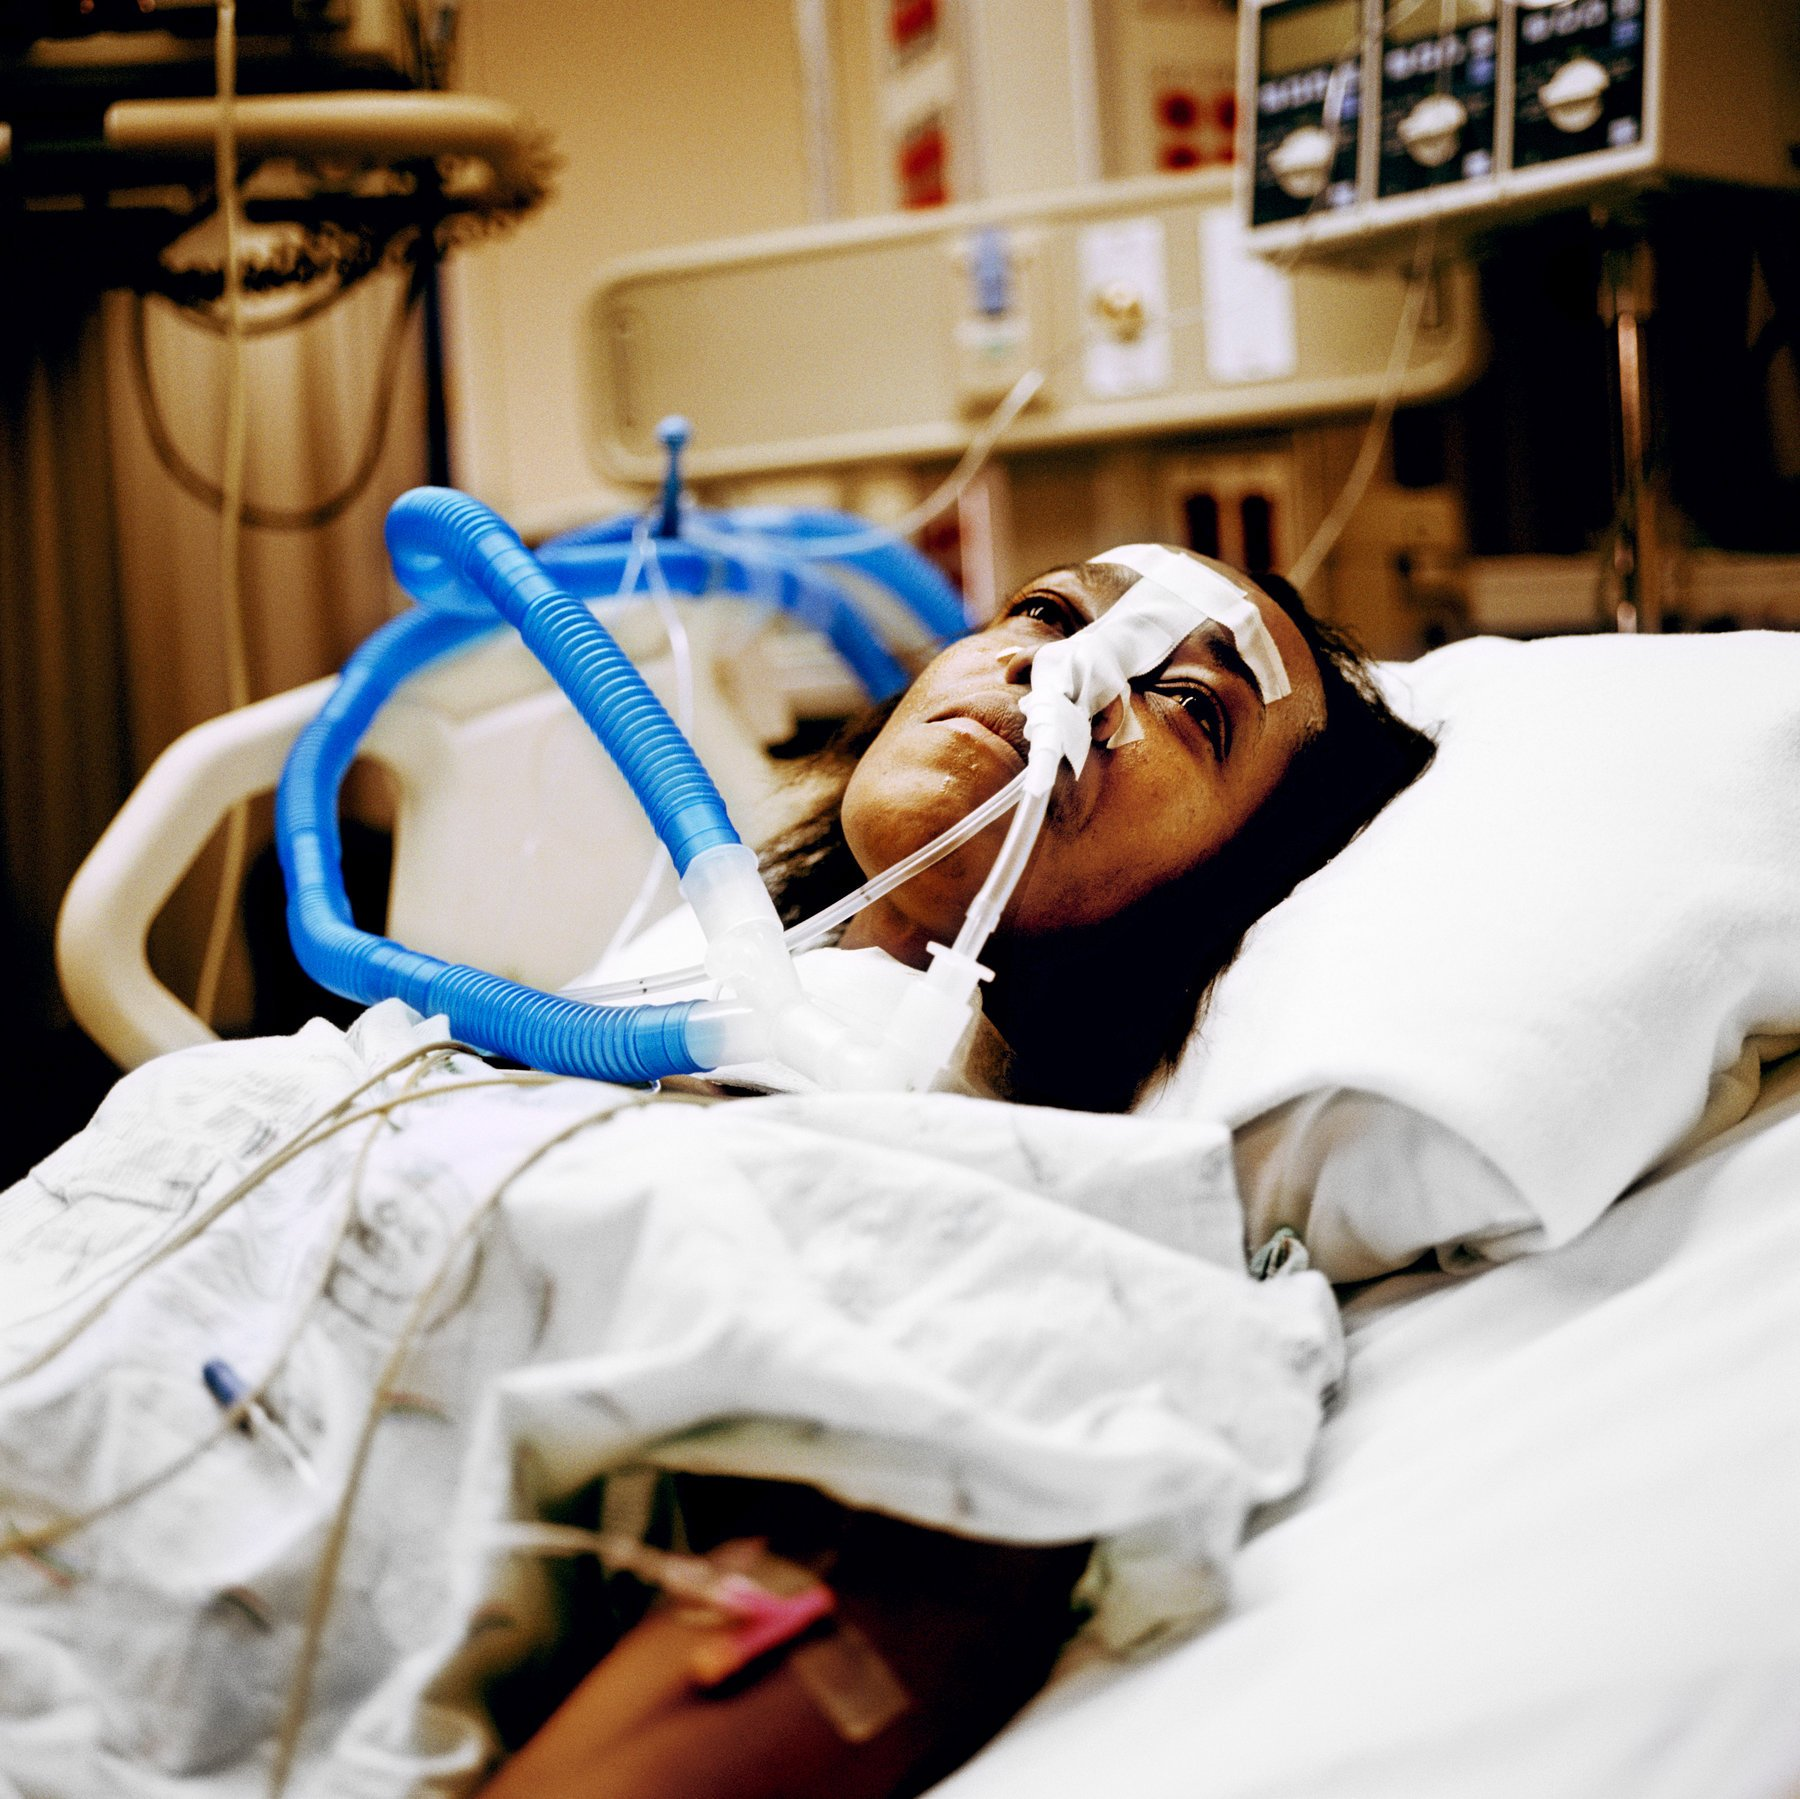 Study Finds Disparity in Critical Care Deaths Between Non-Minority and Minority Hospitals